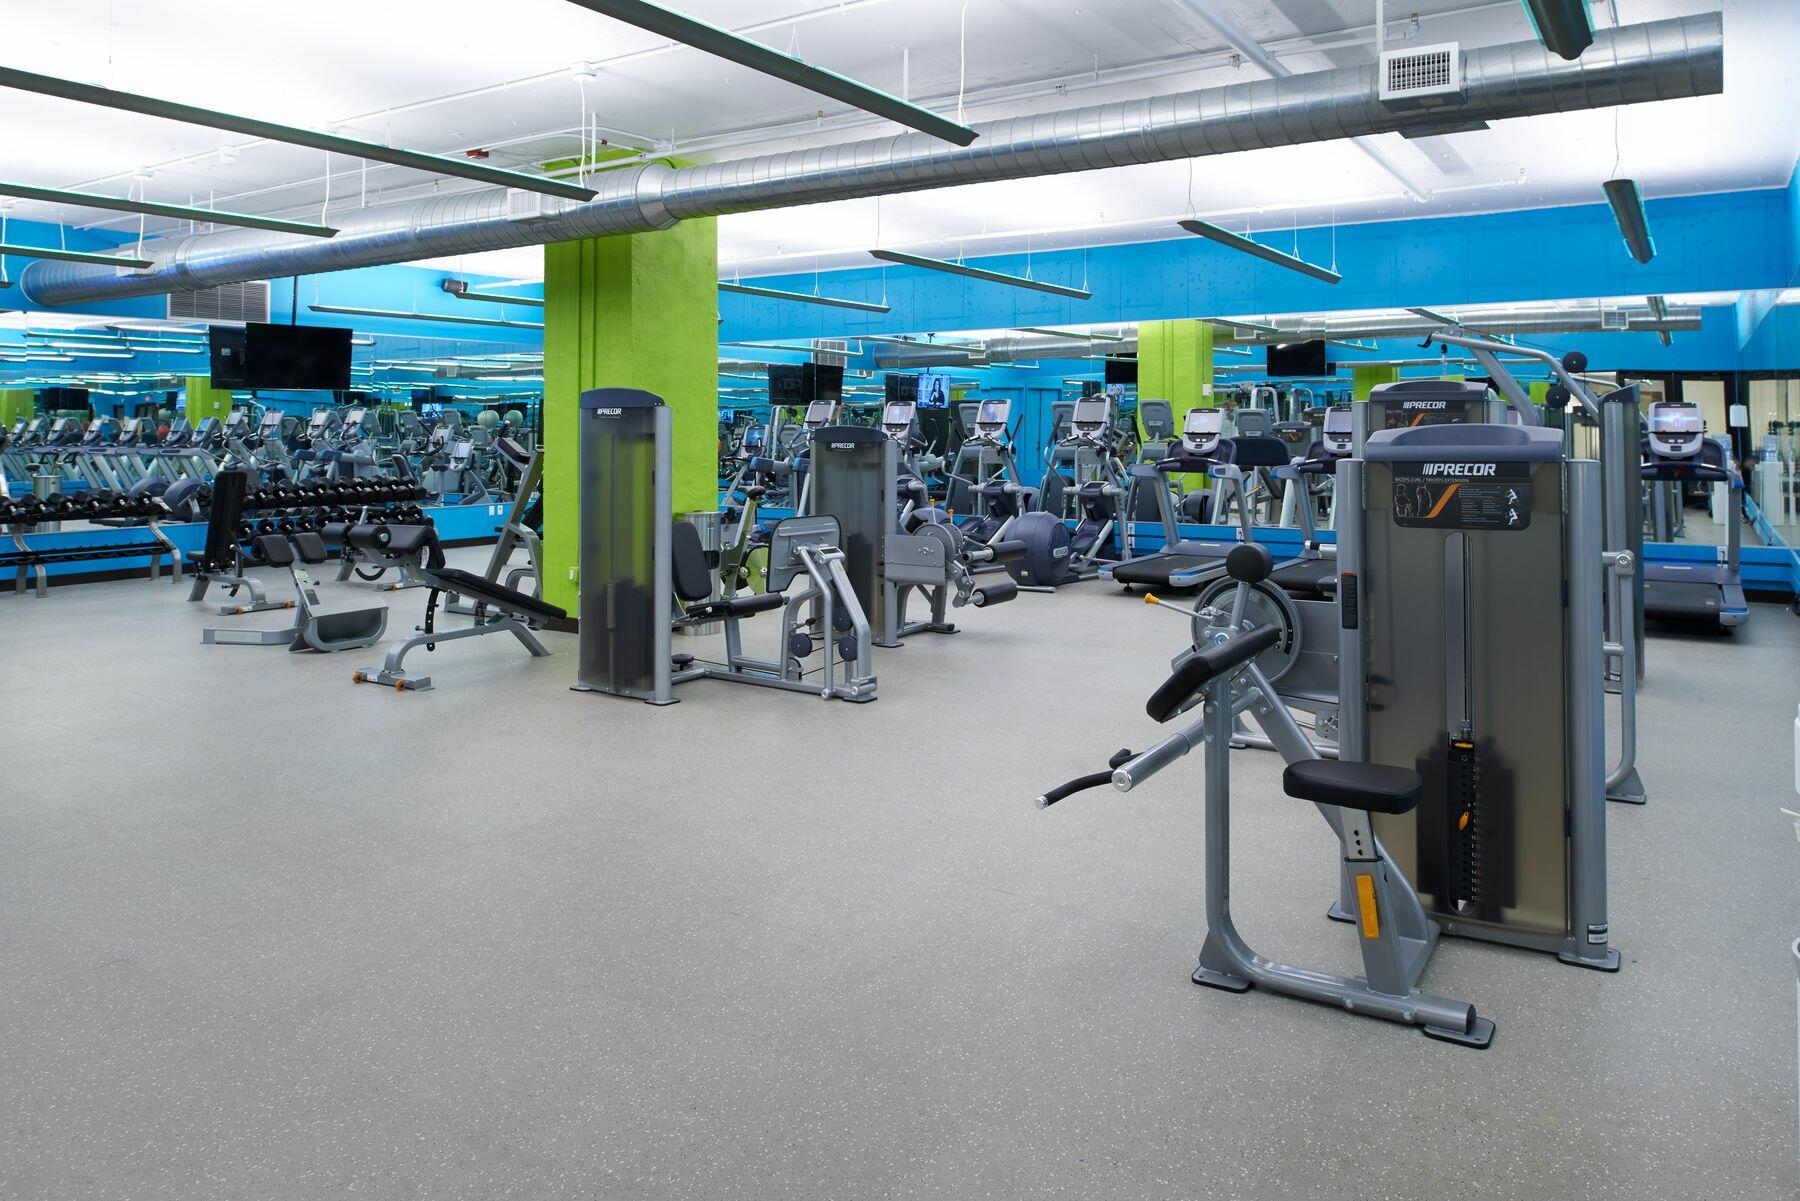 Energy Fitness Studio with state-of-the-art equipment